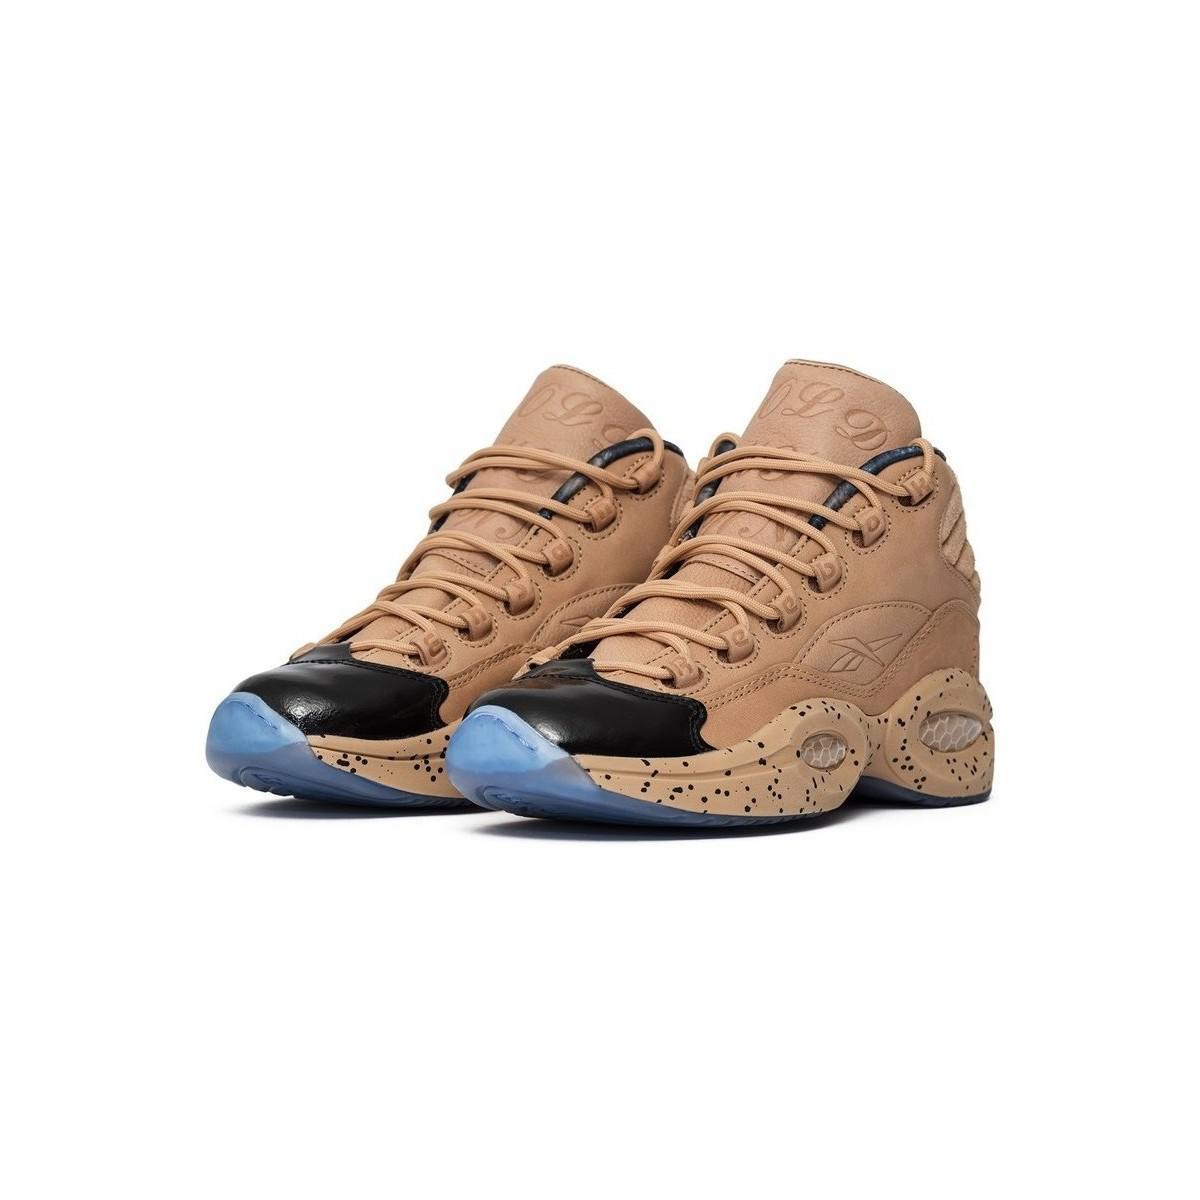 Reebok Question Mid Melody Ehsani women's Shoes (High-top Trainers) in Cheap Cheap Online Clearance Low Shipping Fee Cheap Sale Footlocker lyjaIMs4wO